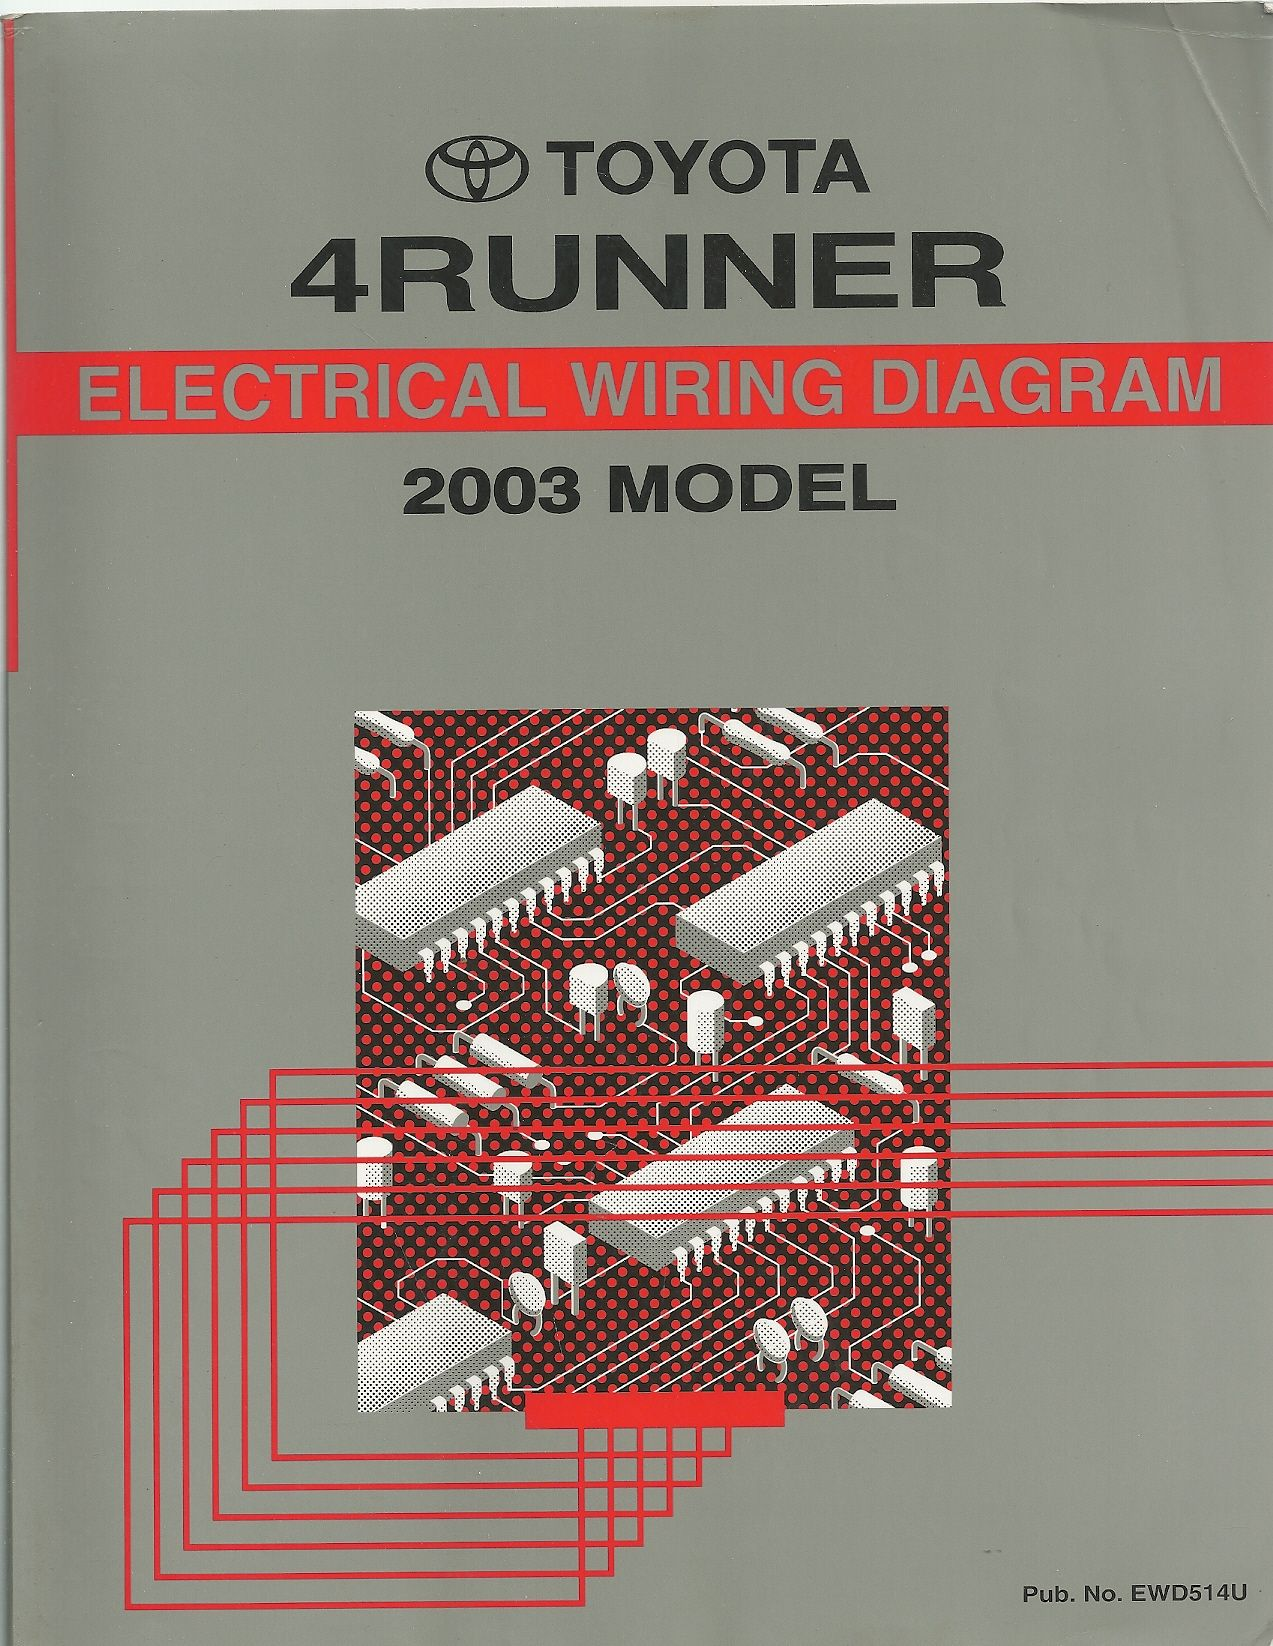 2003 Toyota 4Runner Wiring Diagram Manual Original, Toyota